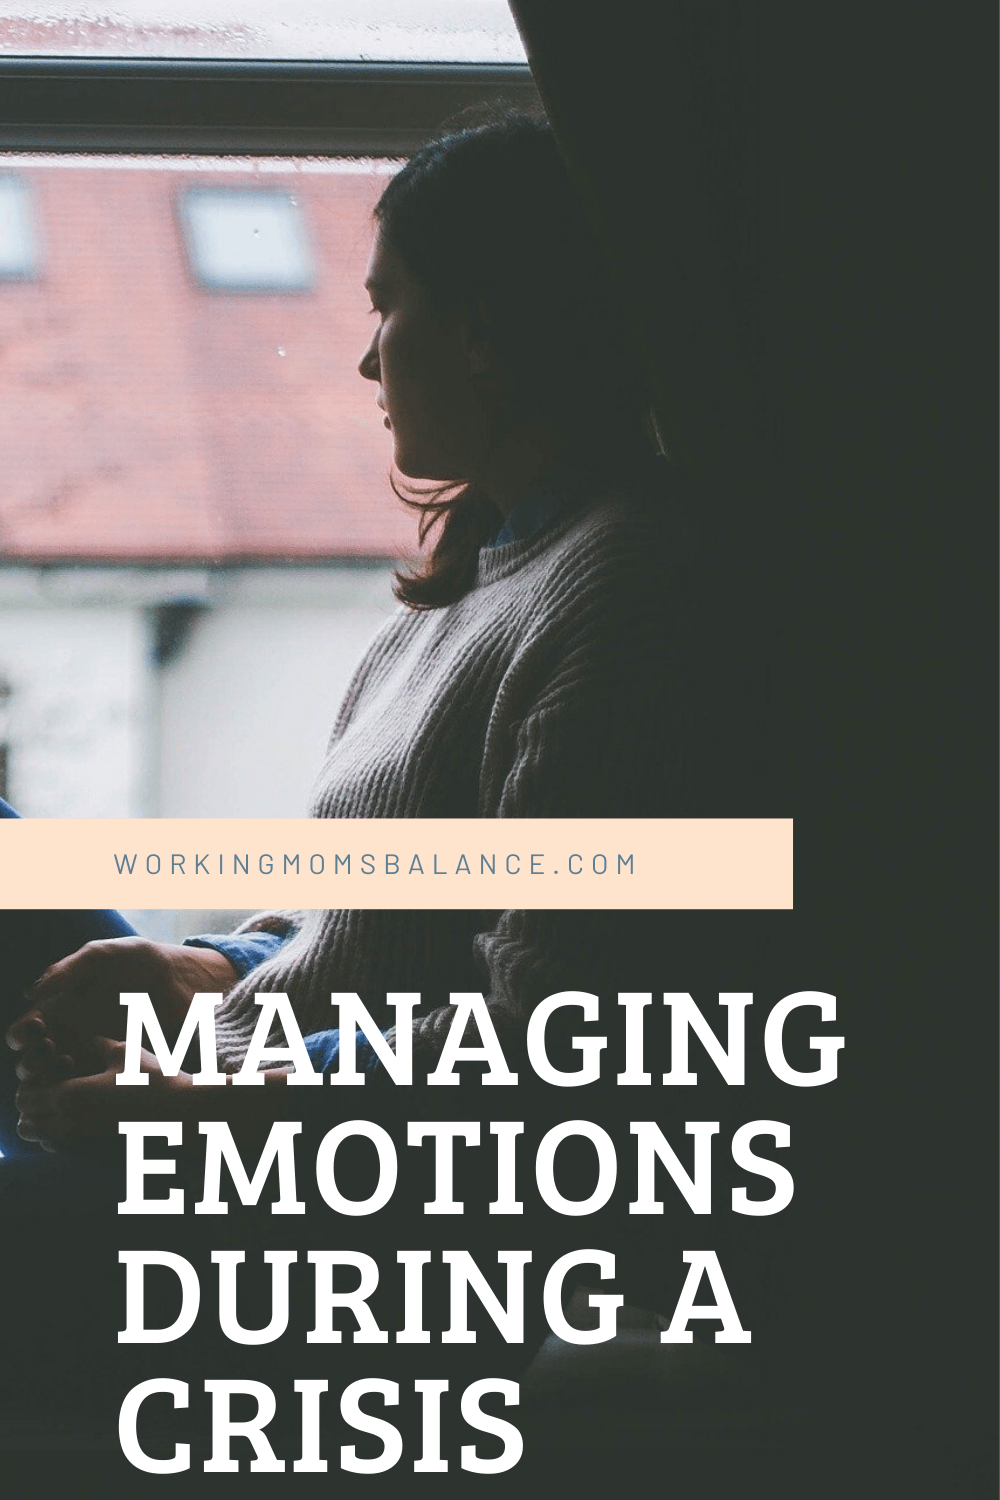 When we are facing a crisis it can feel like we are overwhelmed by our emotions and life feels out of control. We have power over our emotions. Learn how to manage emotions.